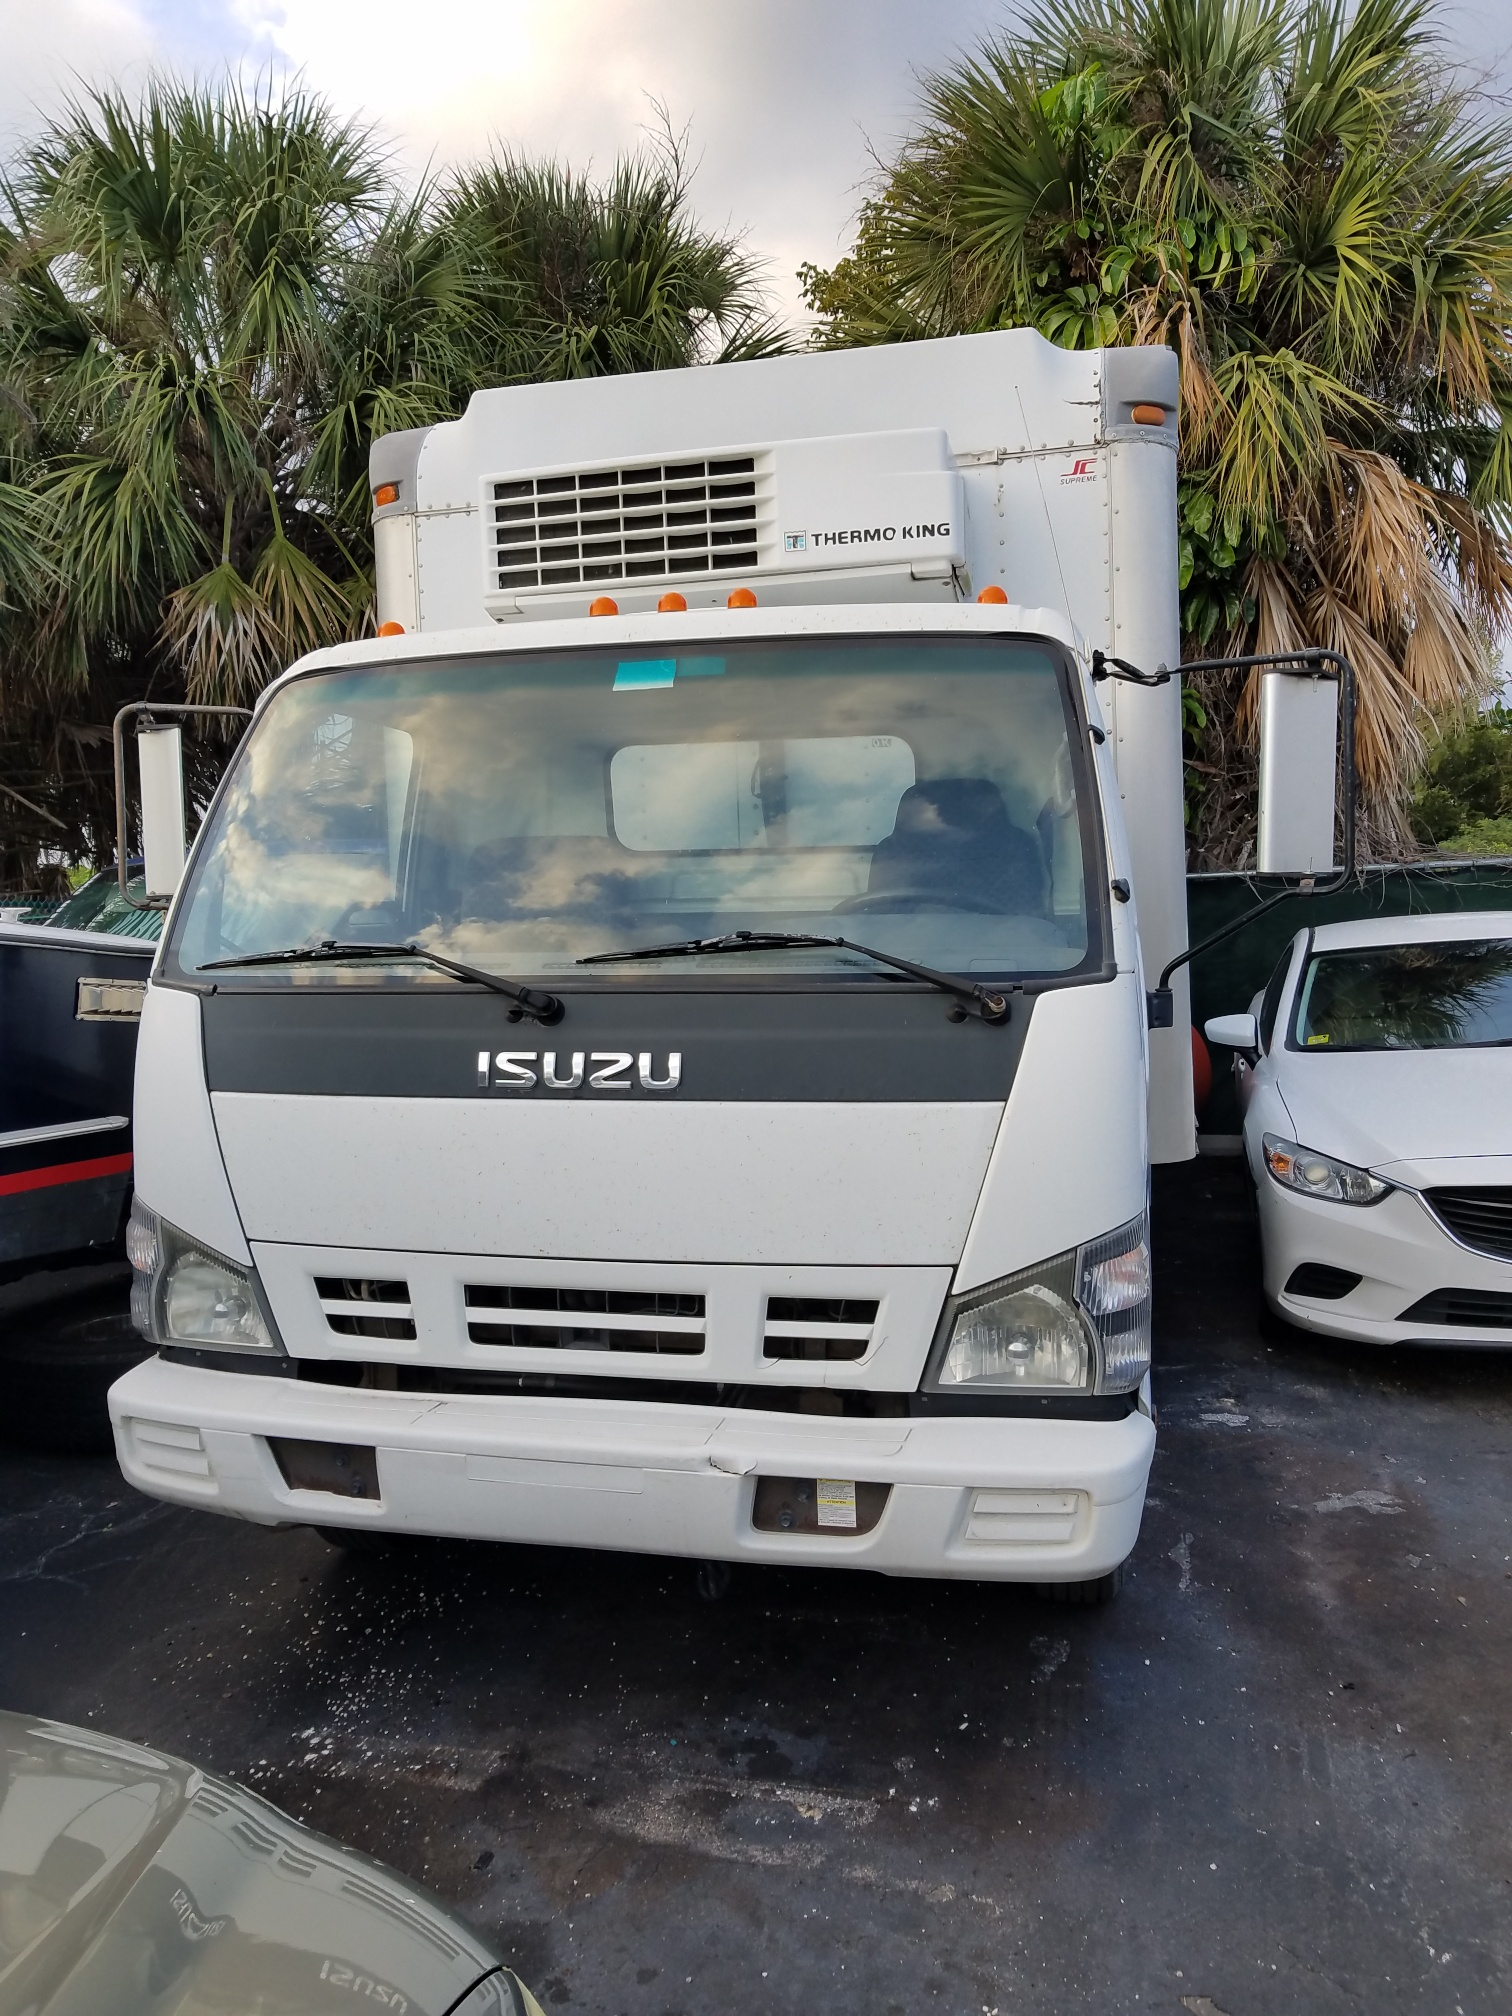 2006 Isuzu Refer Box Truck STK #6680